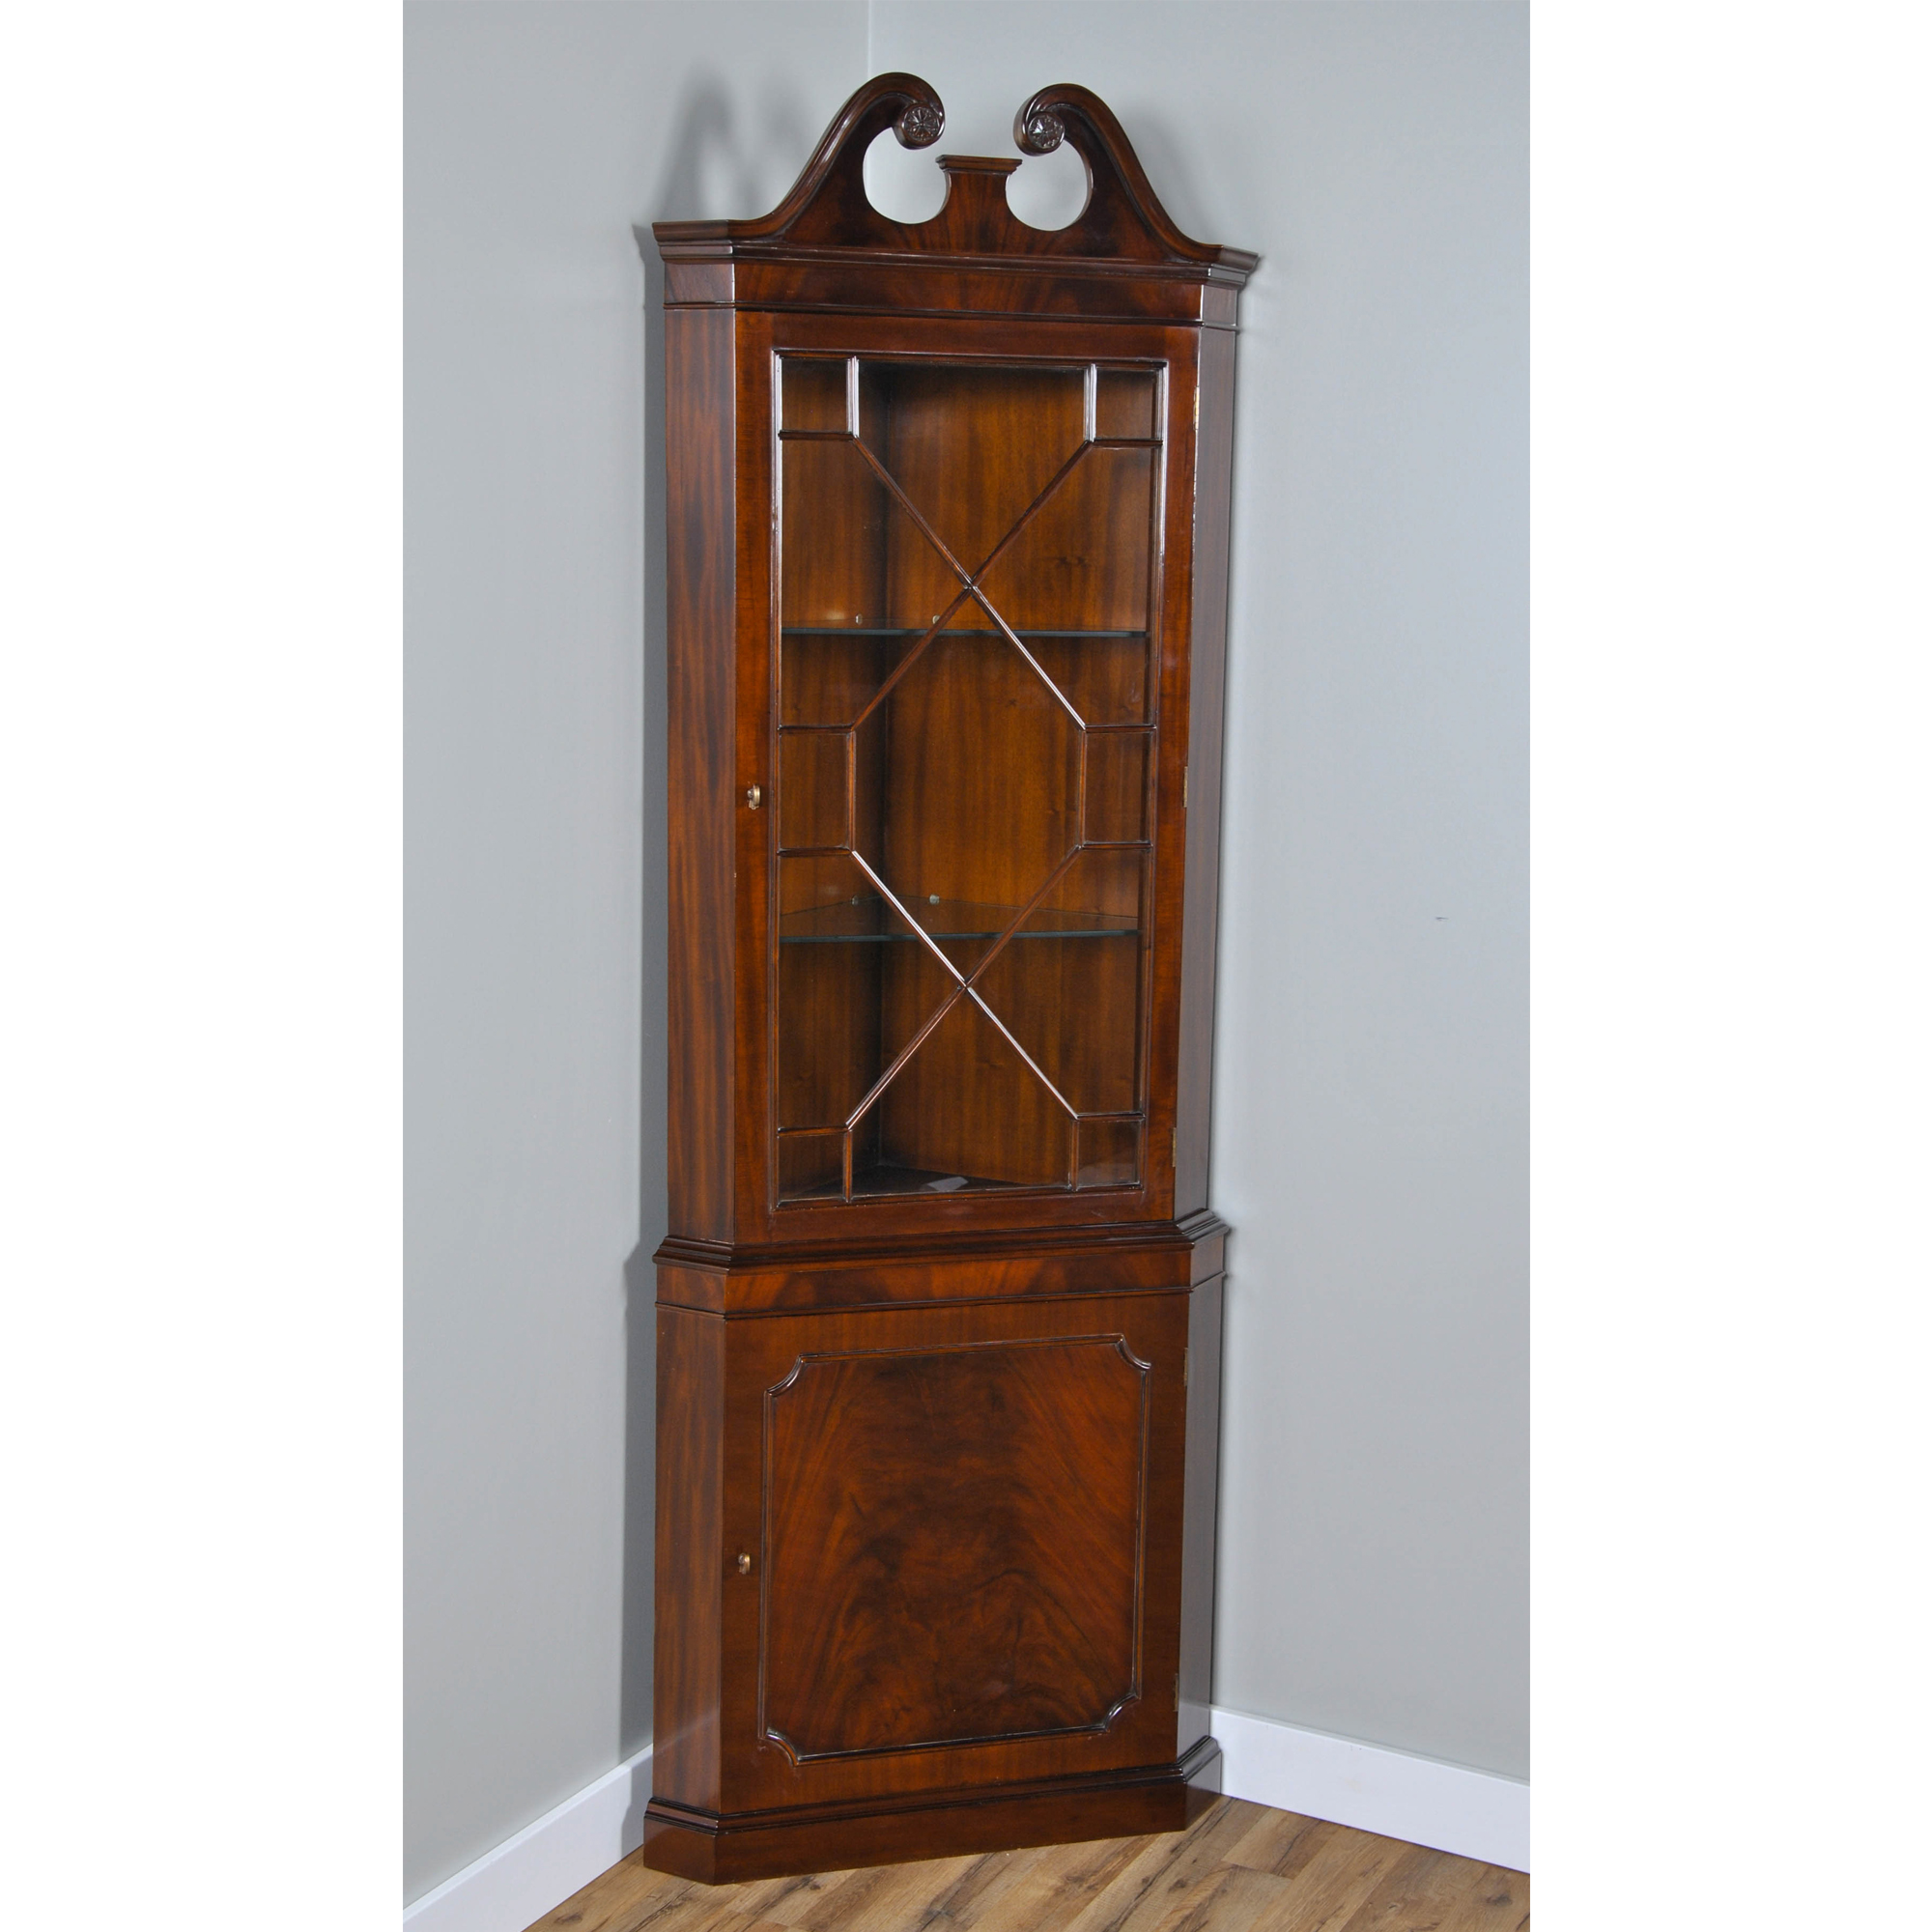 Mahogany Corner Cabinet Niagara Furniture Mahogany Furniture